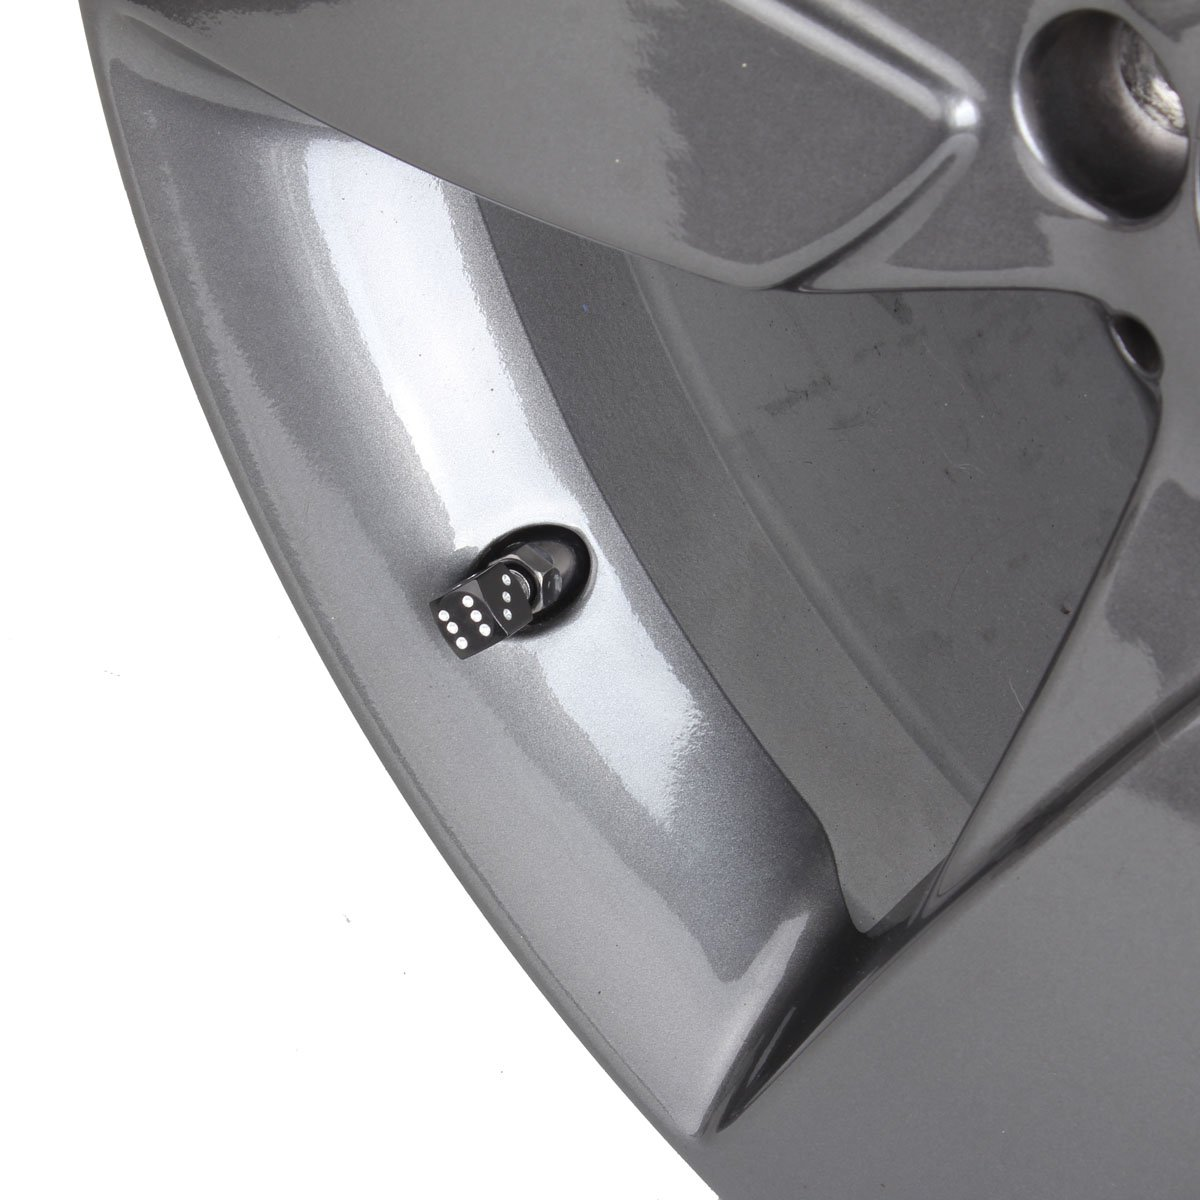 TOMALL Dice Style Valve Stem Caps Gray for Vehicle Motorcycle Bike